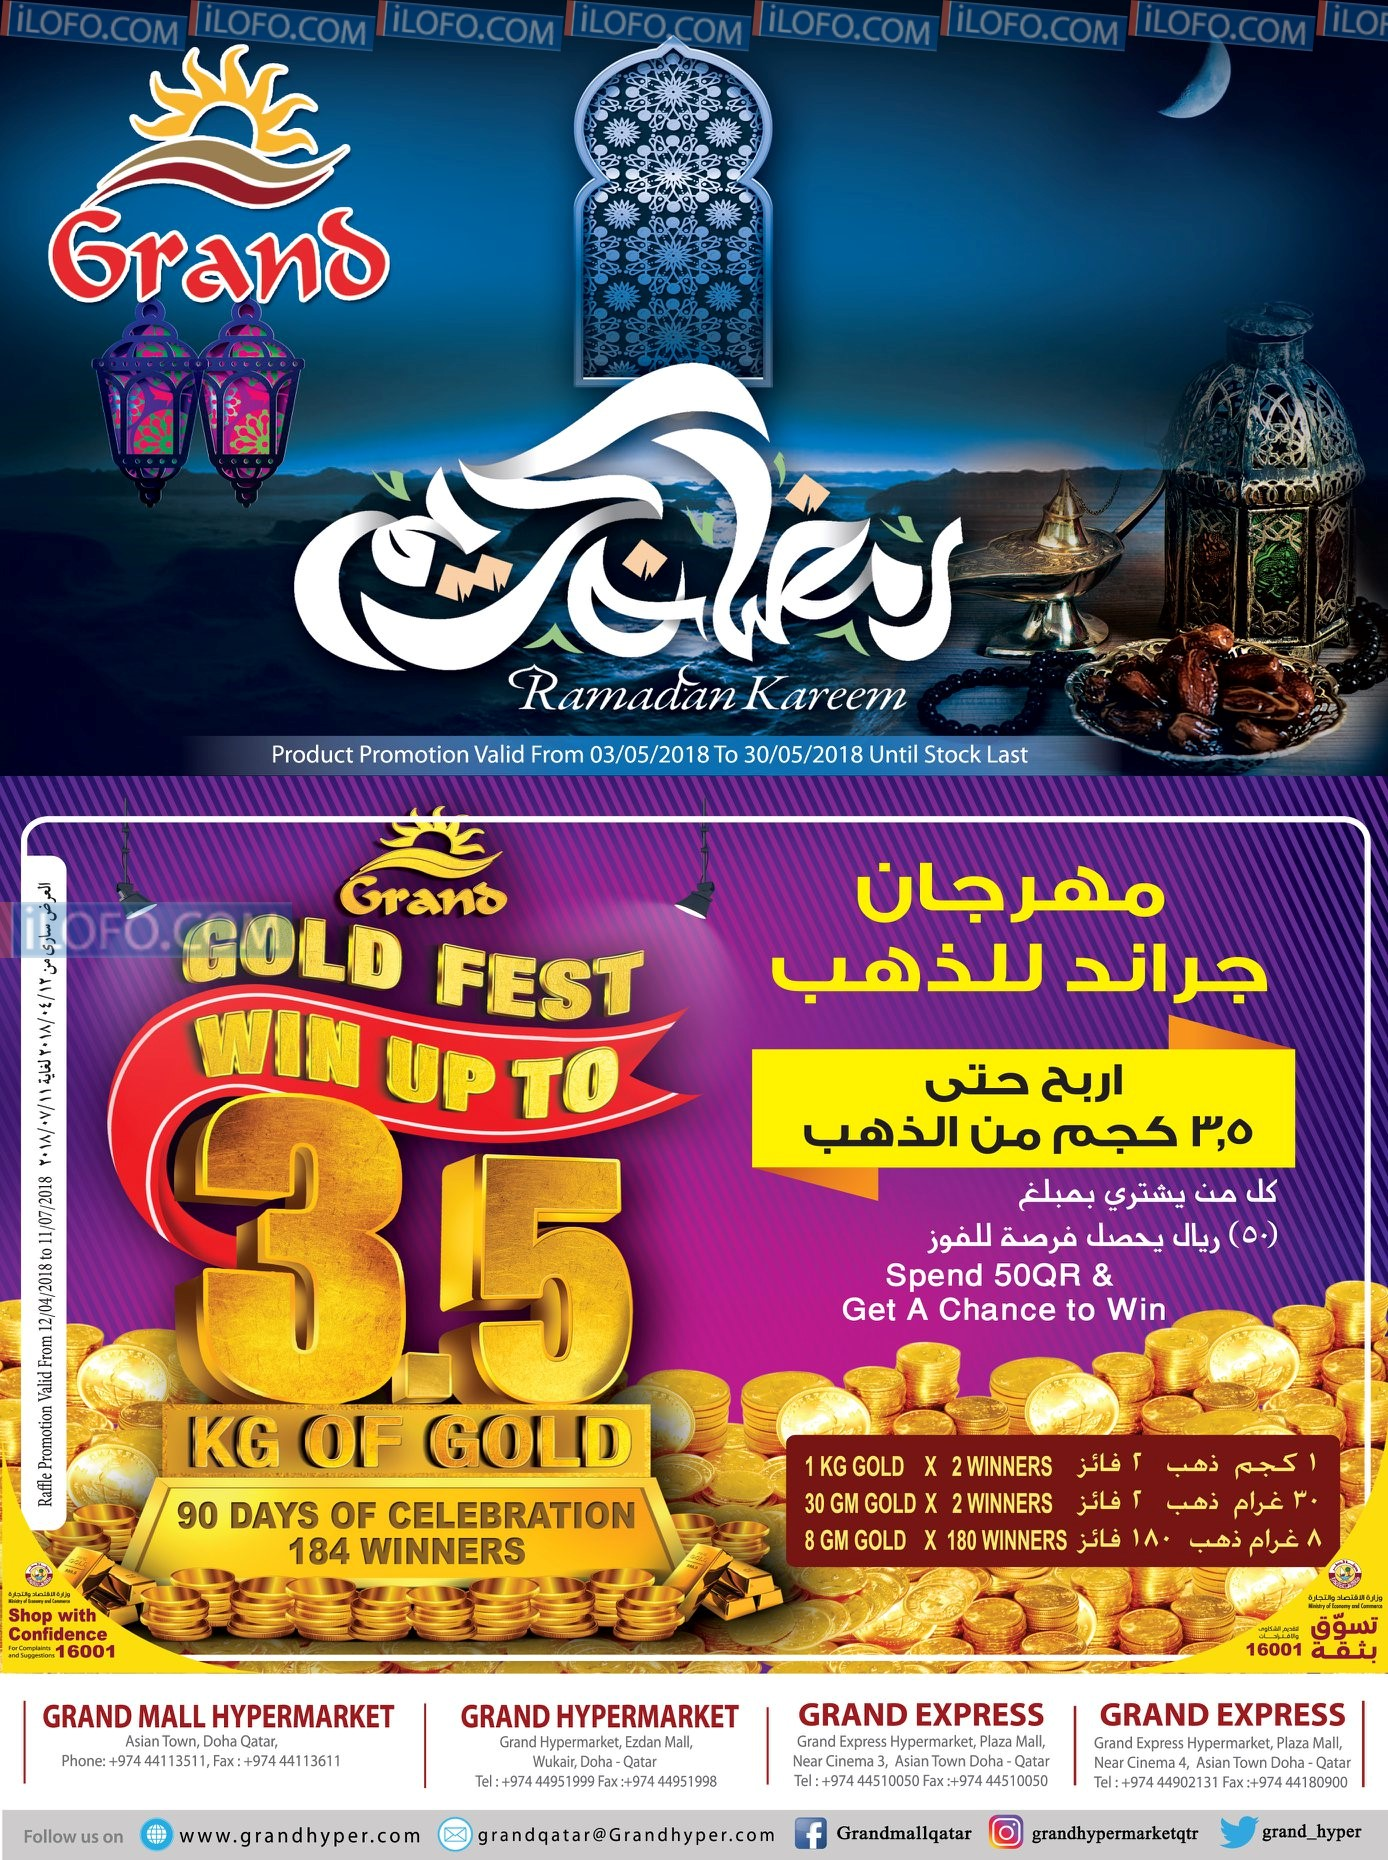 Grand Hypermarket Ramadan Kareem Offers